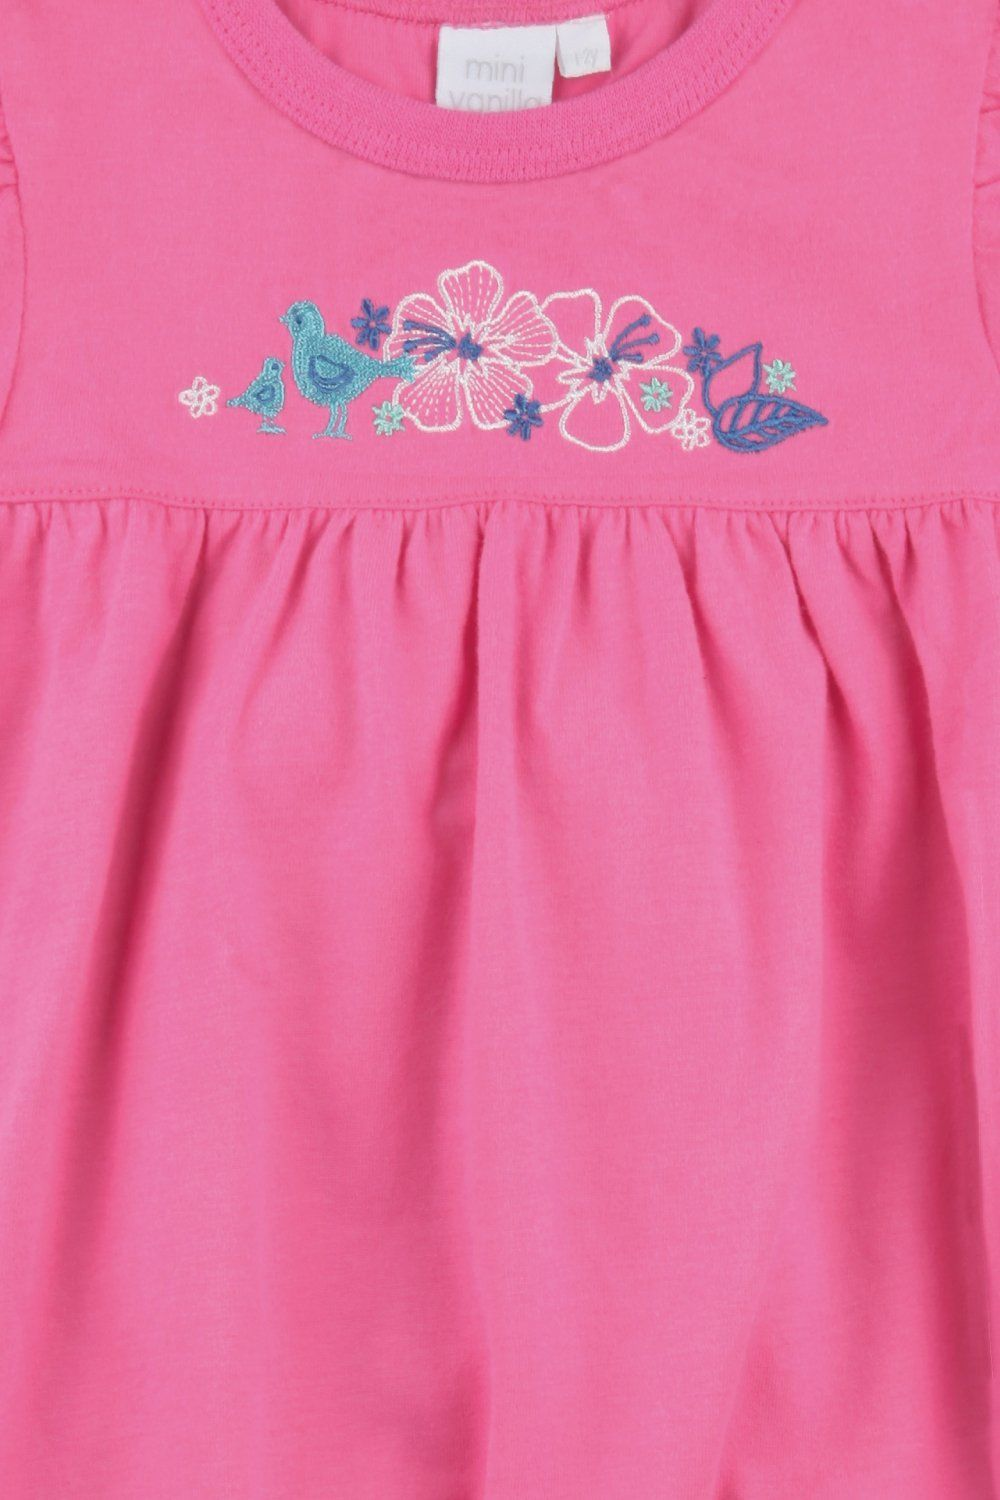 Girlie Pyjamas in pink, flowers and more pink